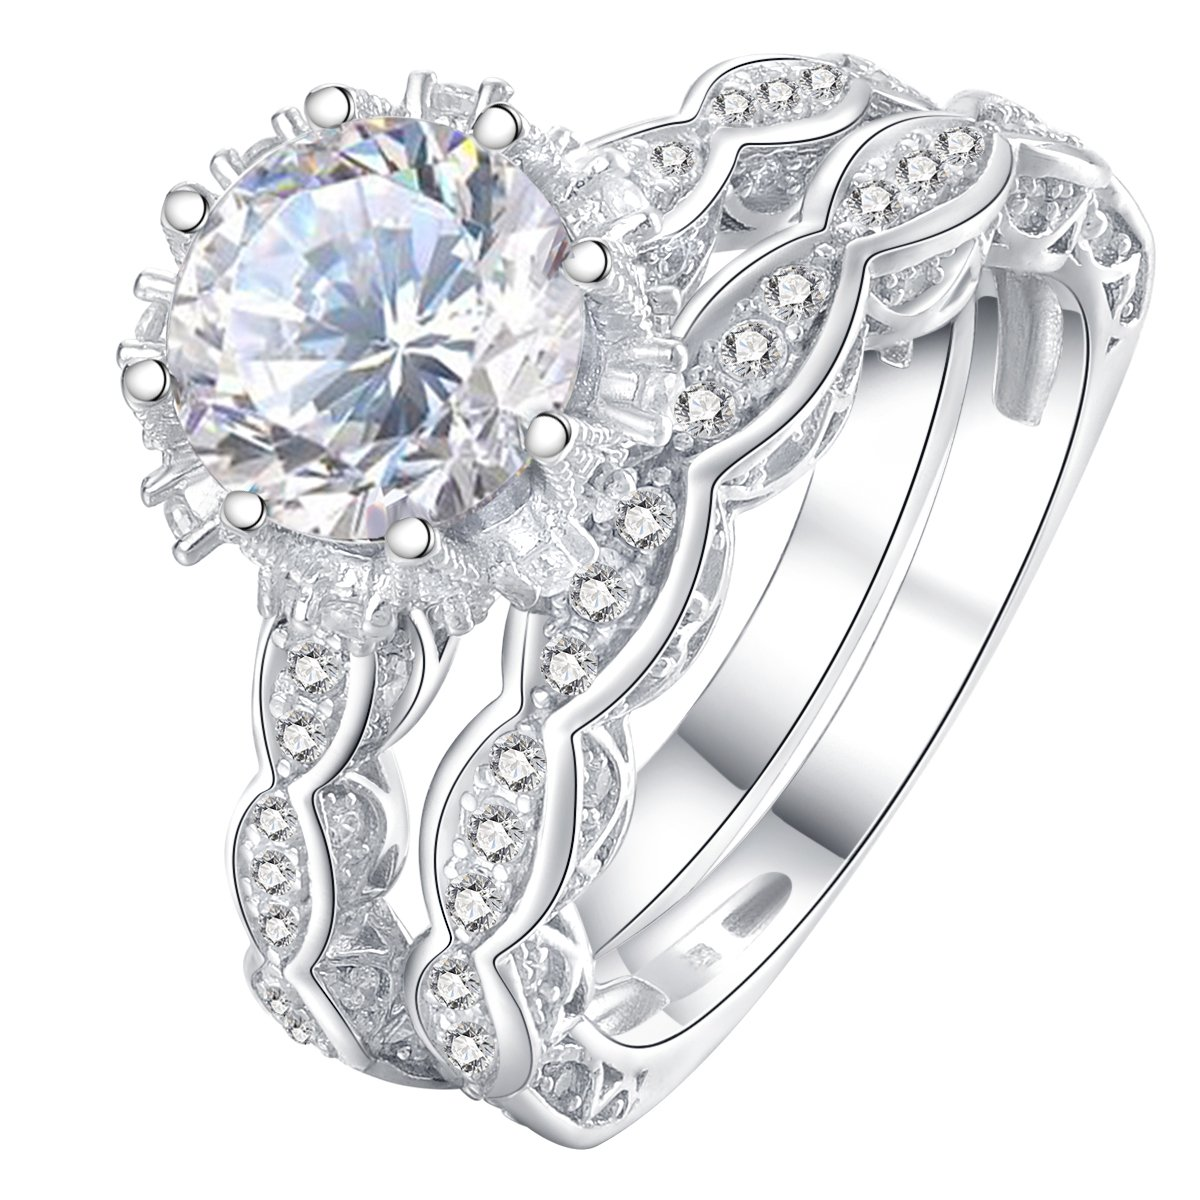 Newshe Vintage 3ct Round White CZ 925 Sterling Silver Wedding Band Engagement Ring Set Size 5-10 Newshe Jewellery JR4891_SS